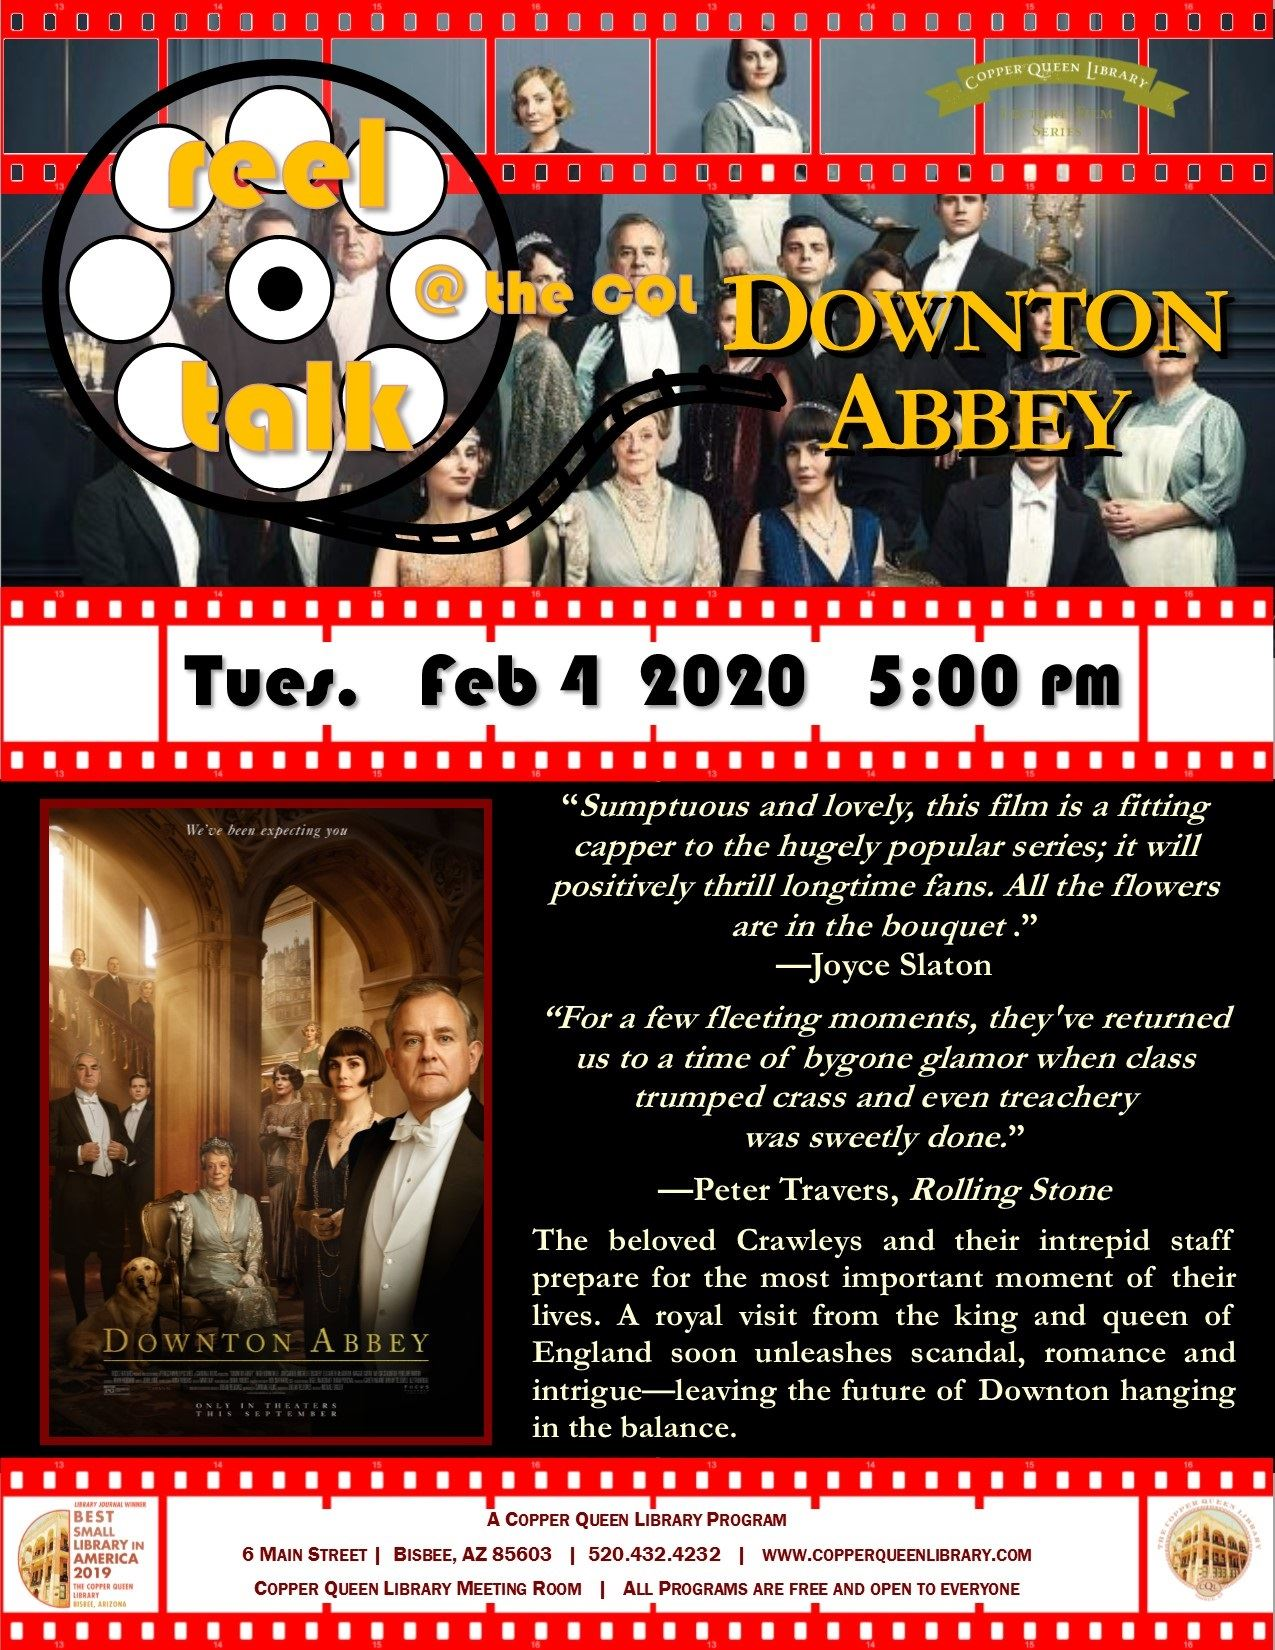 REEL TALK DOWNTON ABBEY